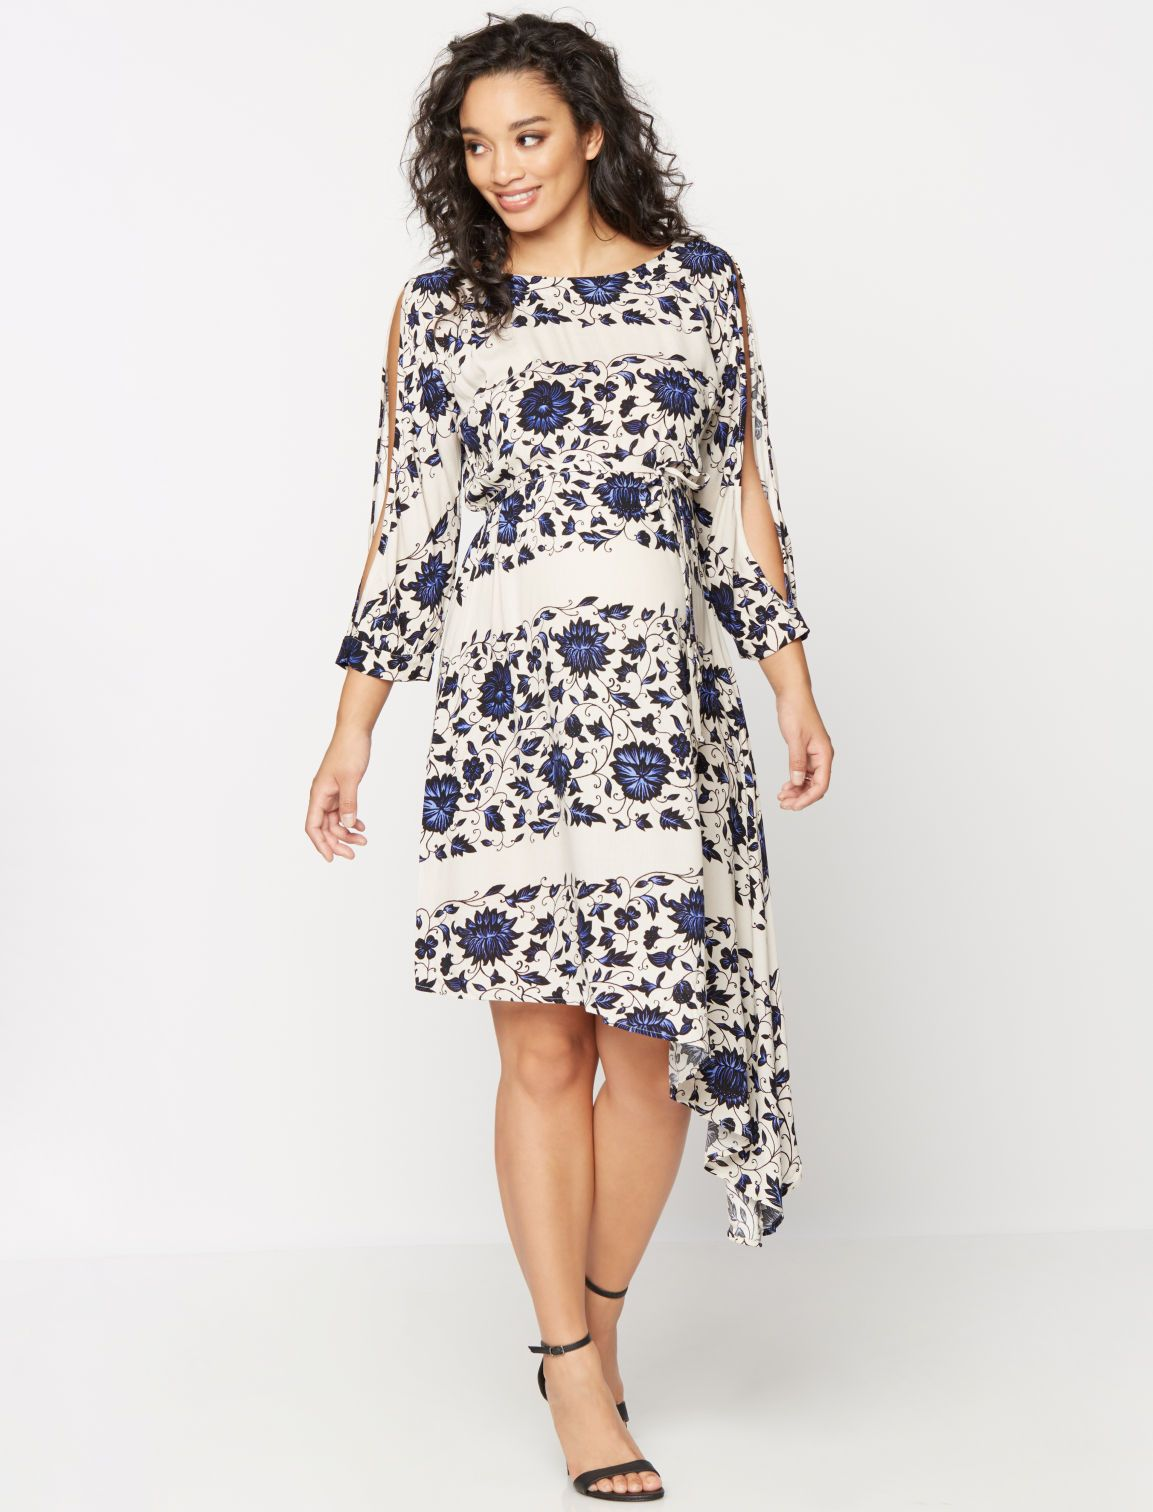 Stunning in floral 34 sleeve bias cut maternity dress by ella stunning in floral 34 sleeve bias cut maternity dress by ella moss available ombrellifo Gallery